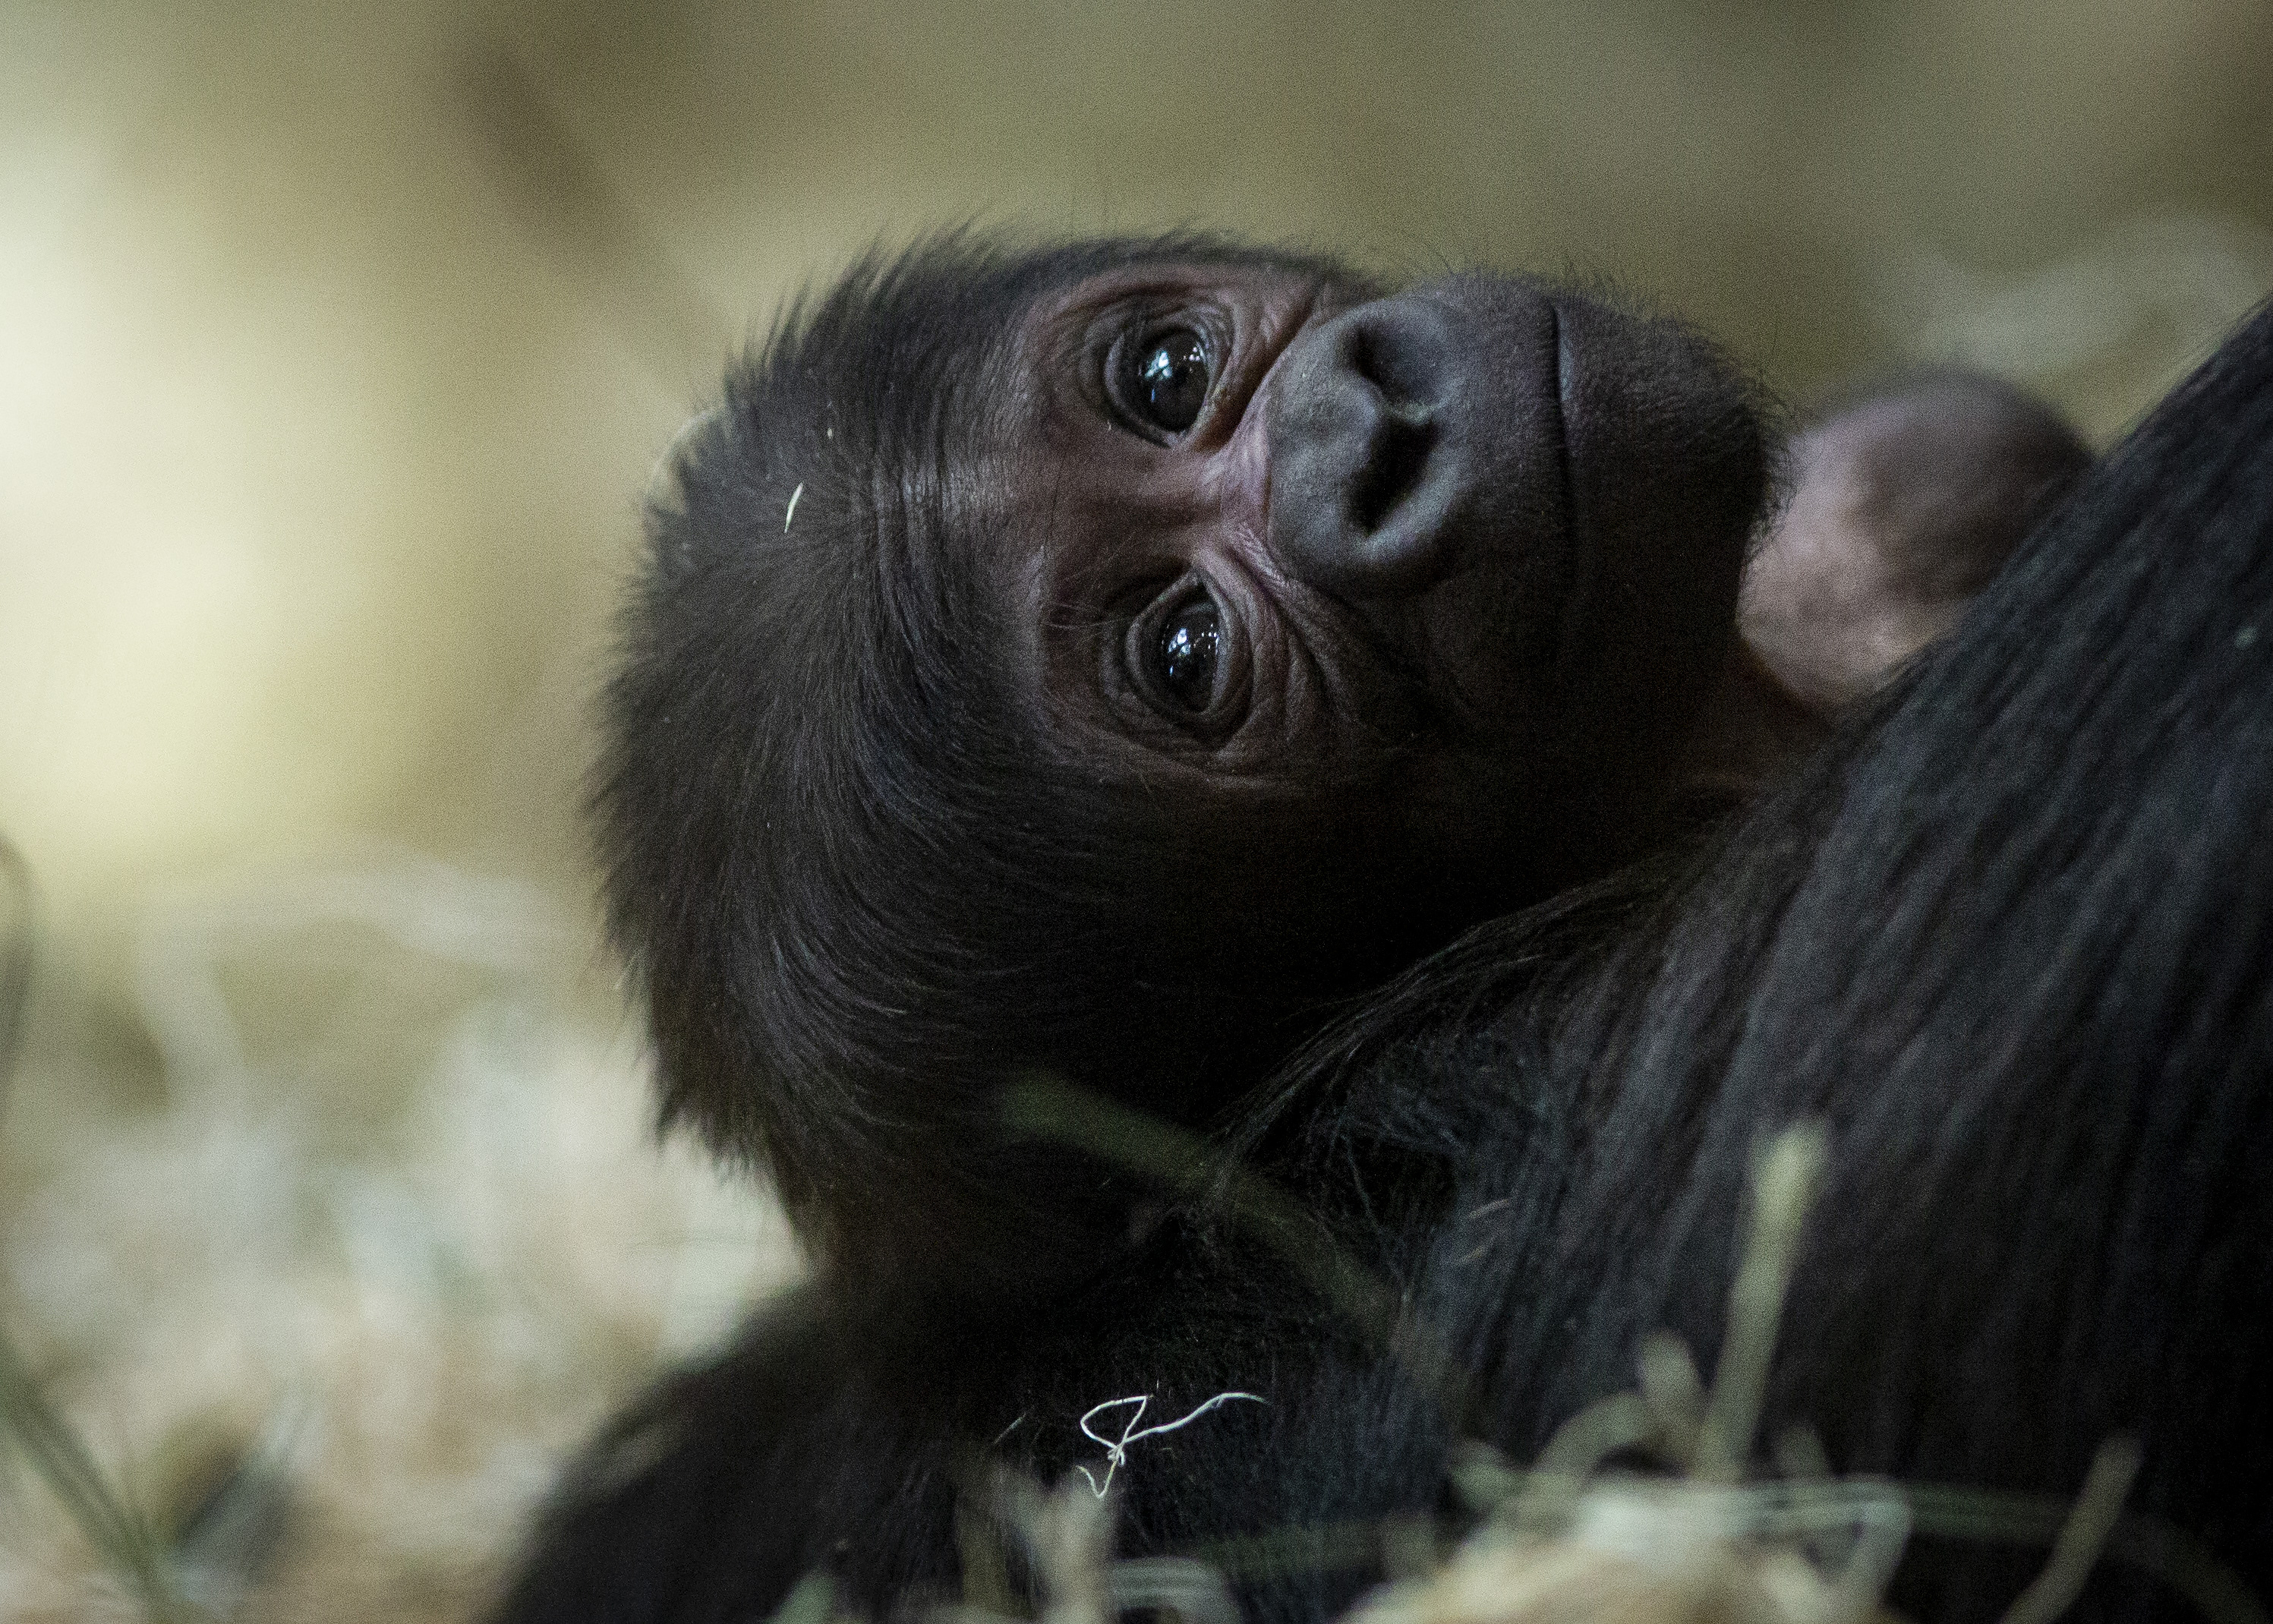 085398a6d0c8 Baby gorilla born at Lincoln Park Zoo on Mother s Day